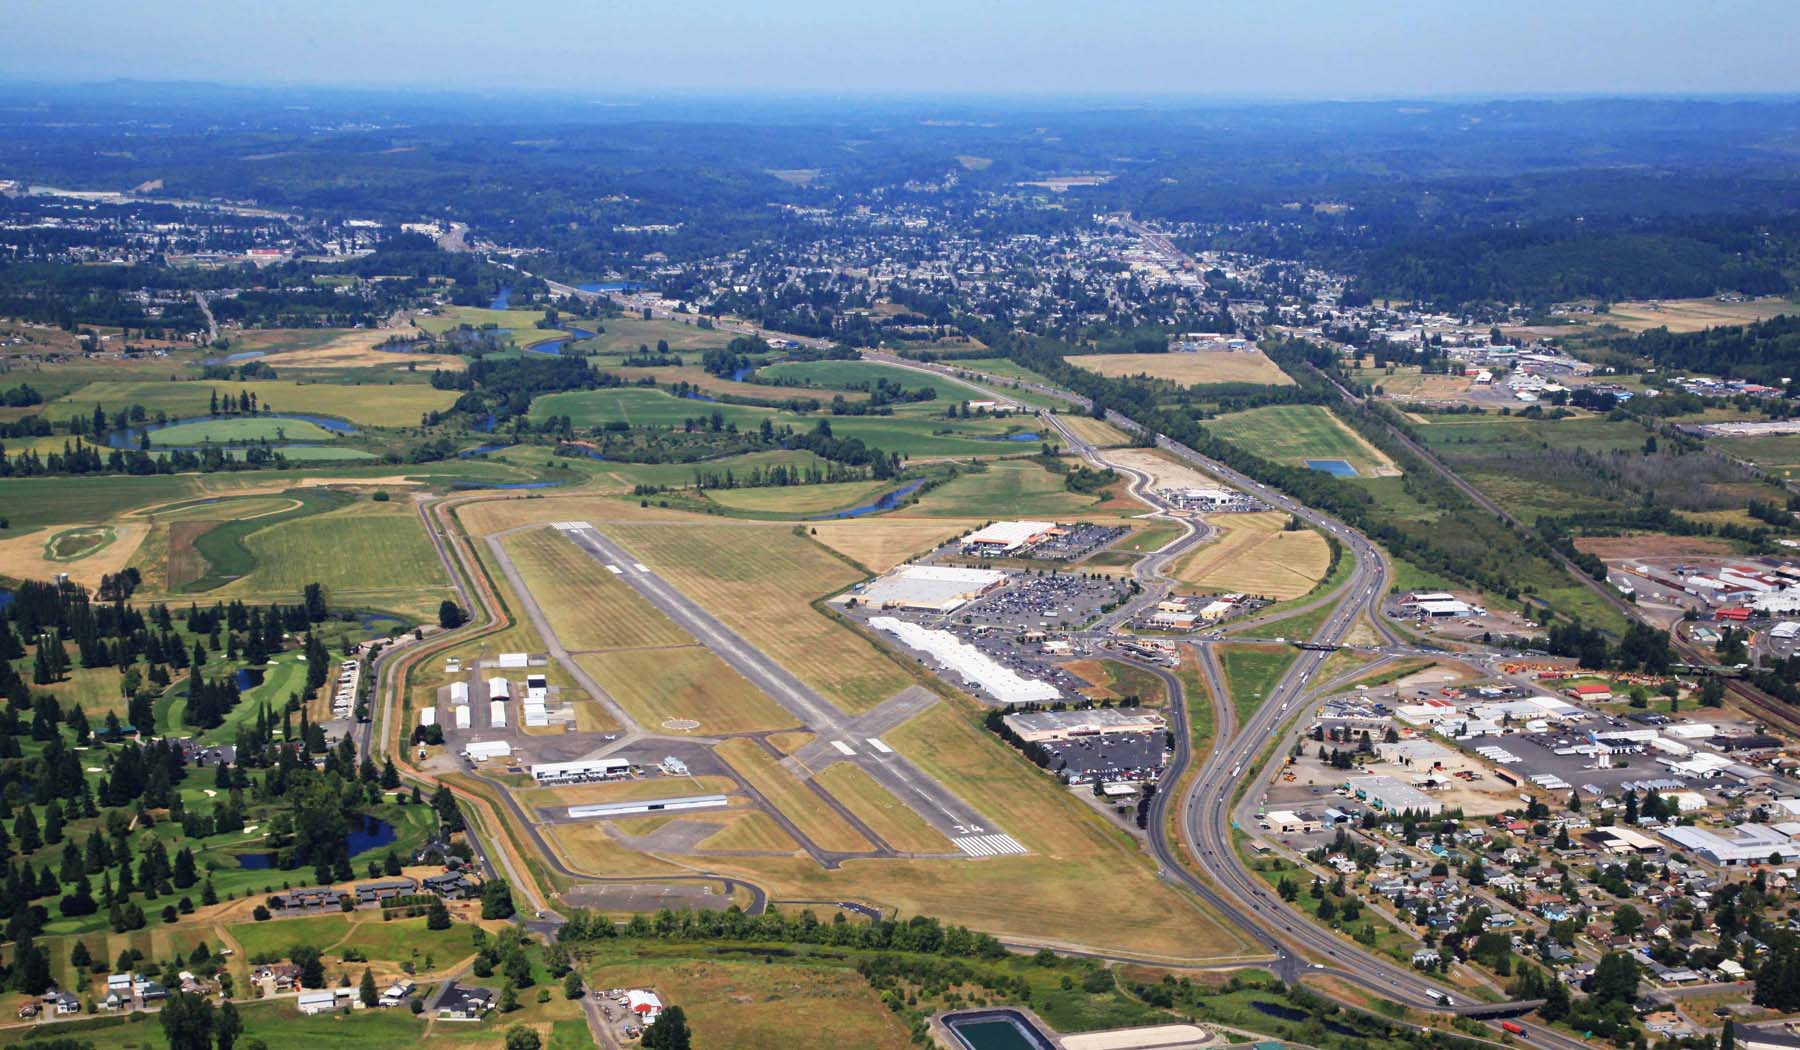 Overhead view of the Chehalis-Centralia airport